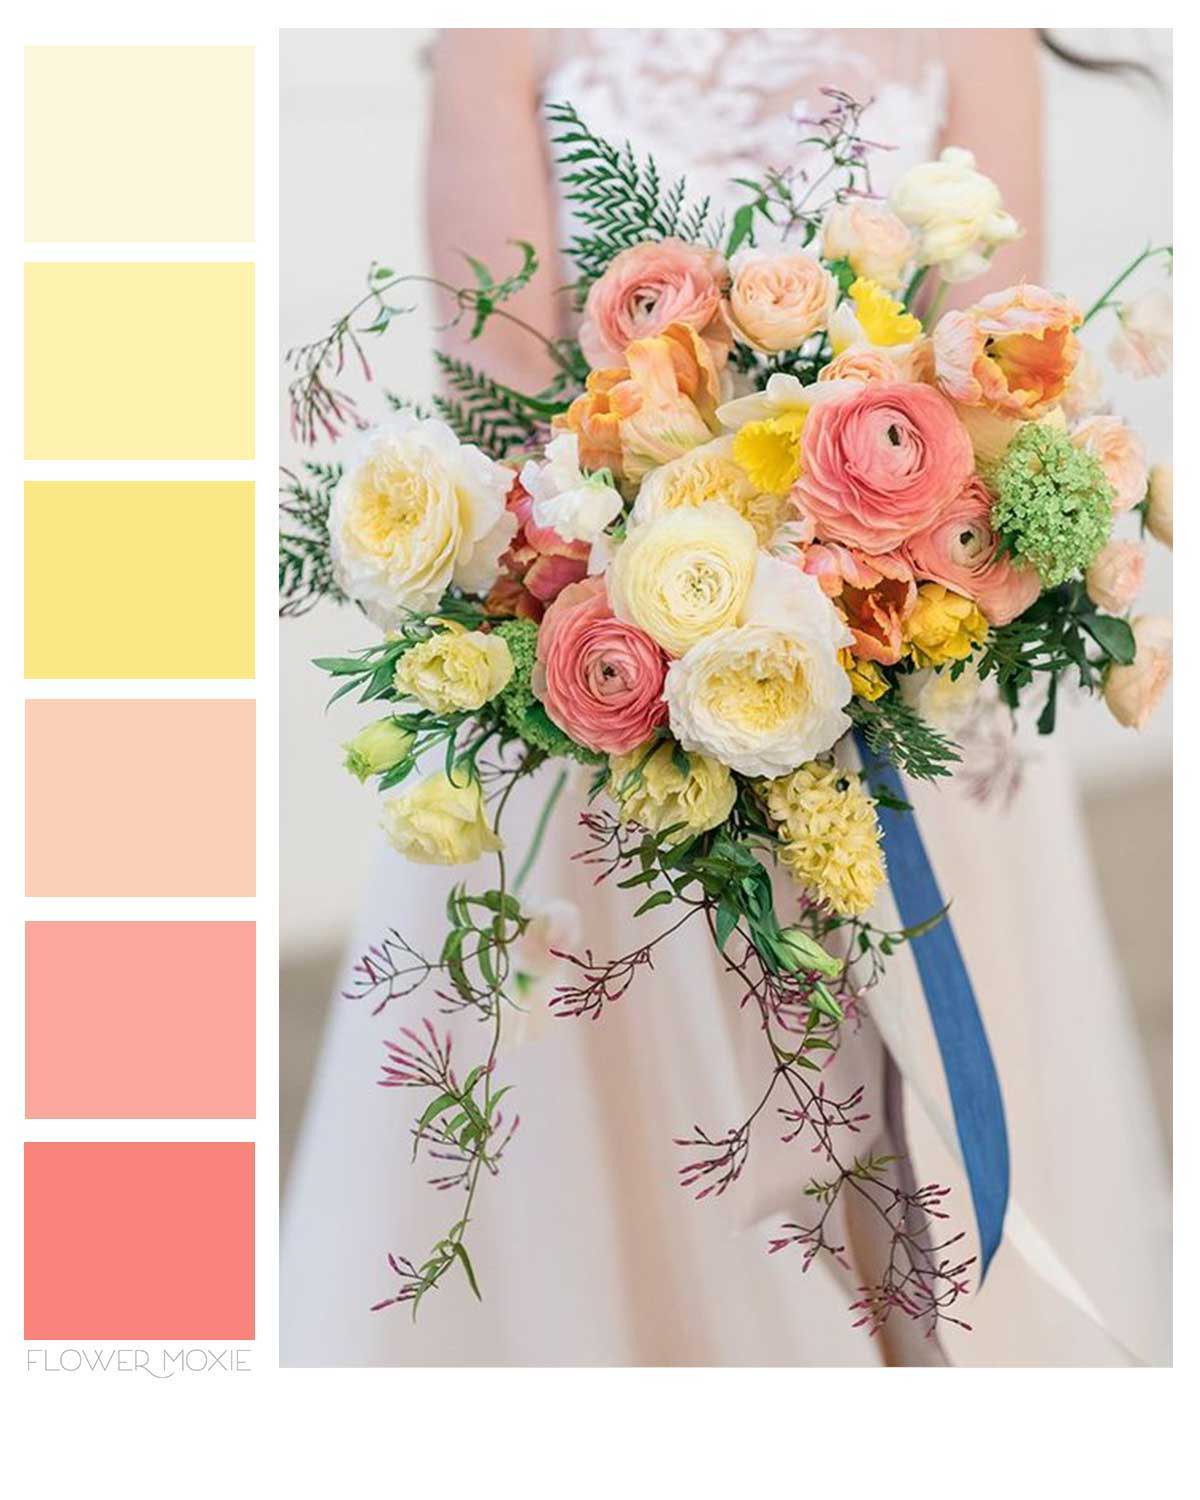 yelow peach and blush pink wedding flower packages